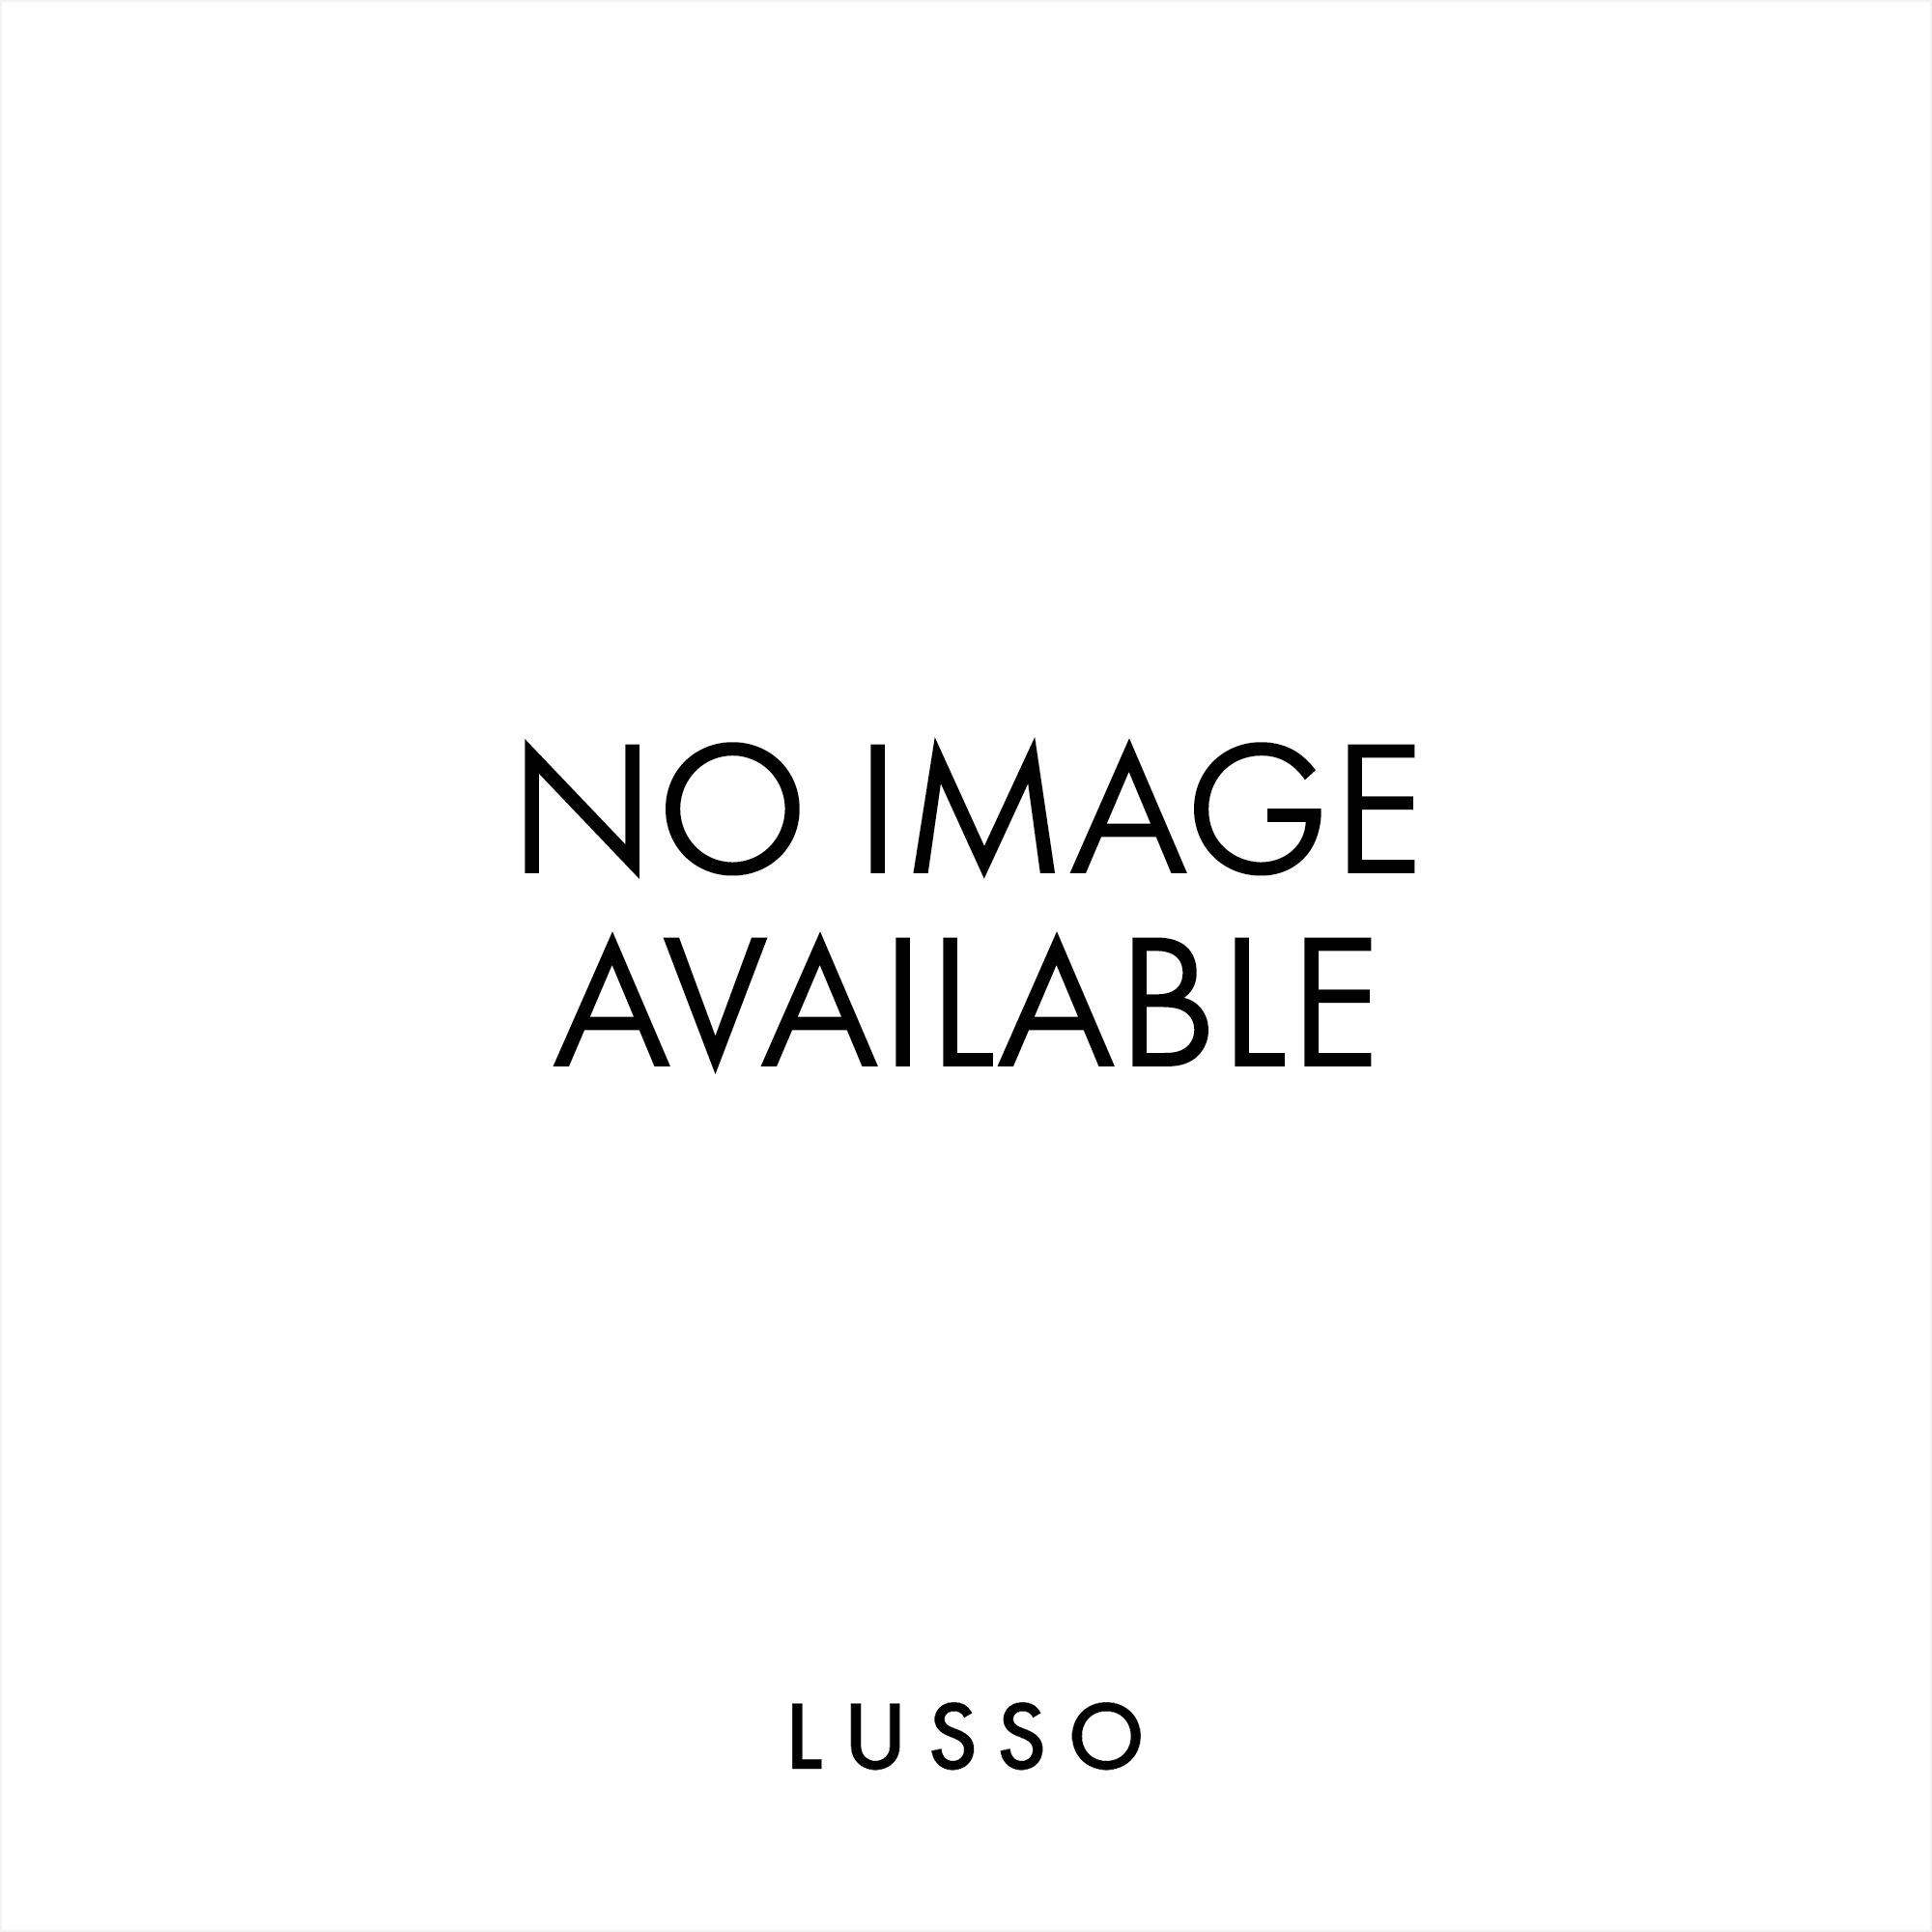 Lusso Stone Wall Hung Slimline Large Countertop Basin Shelf 1200